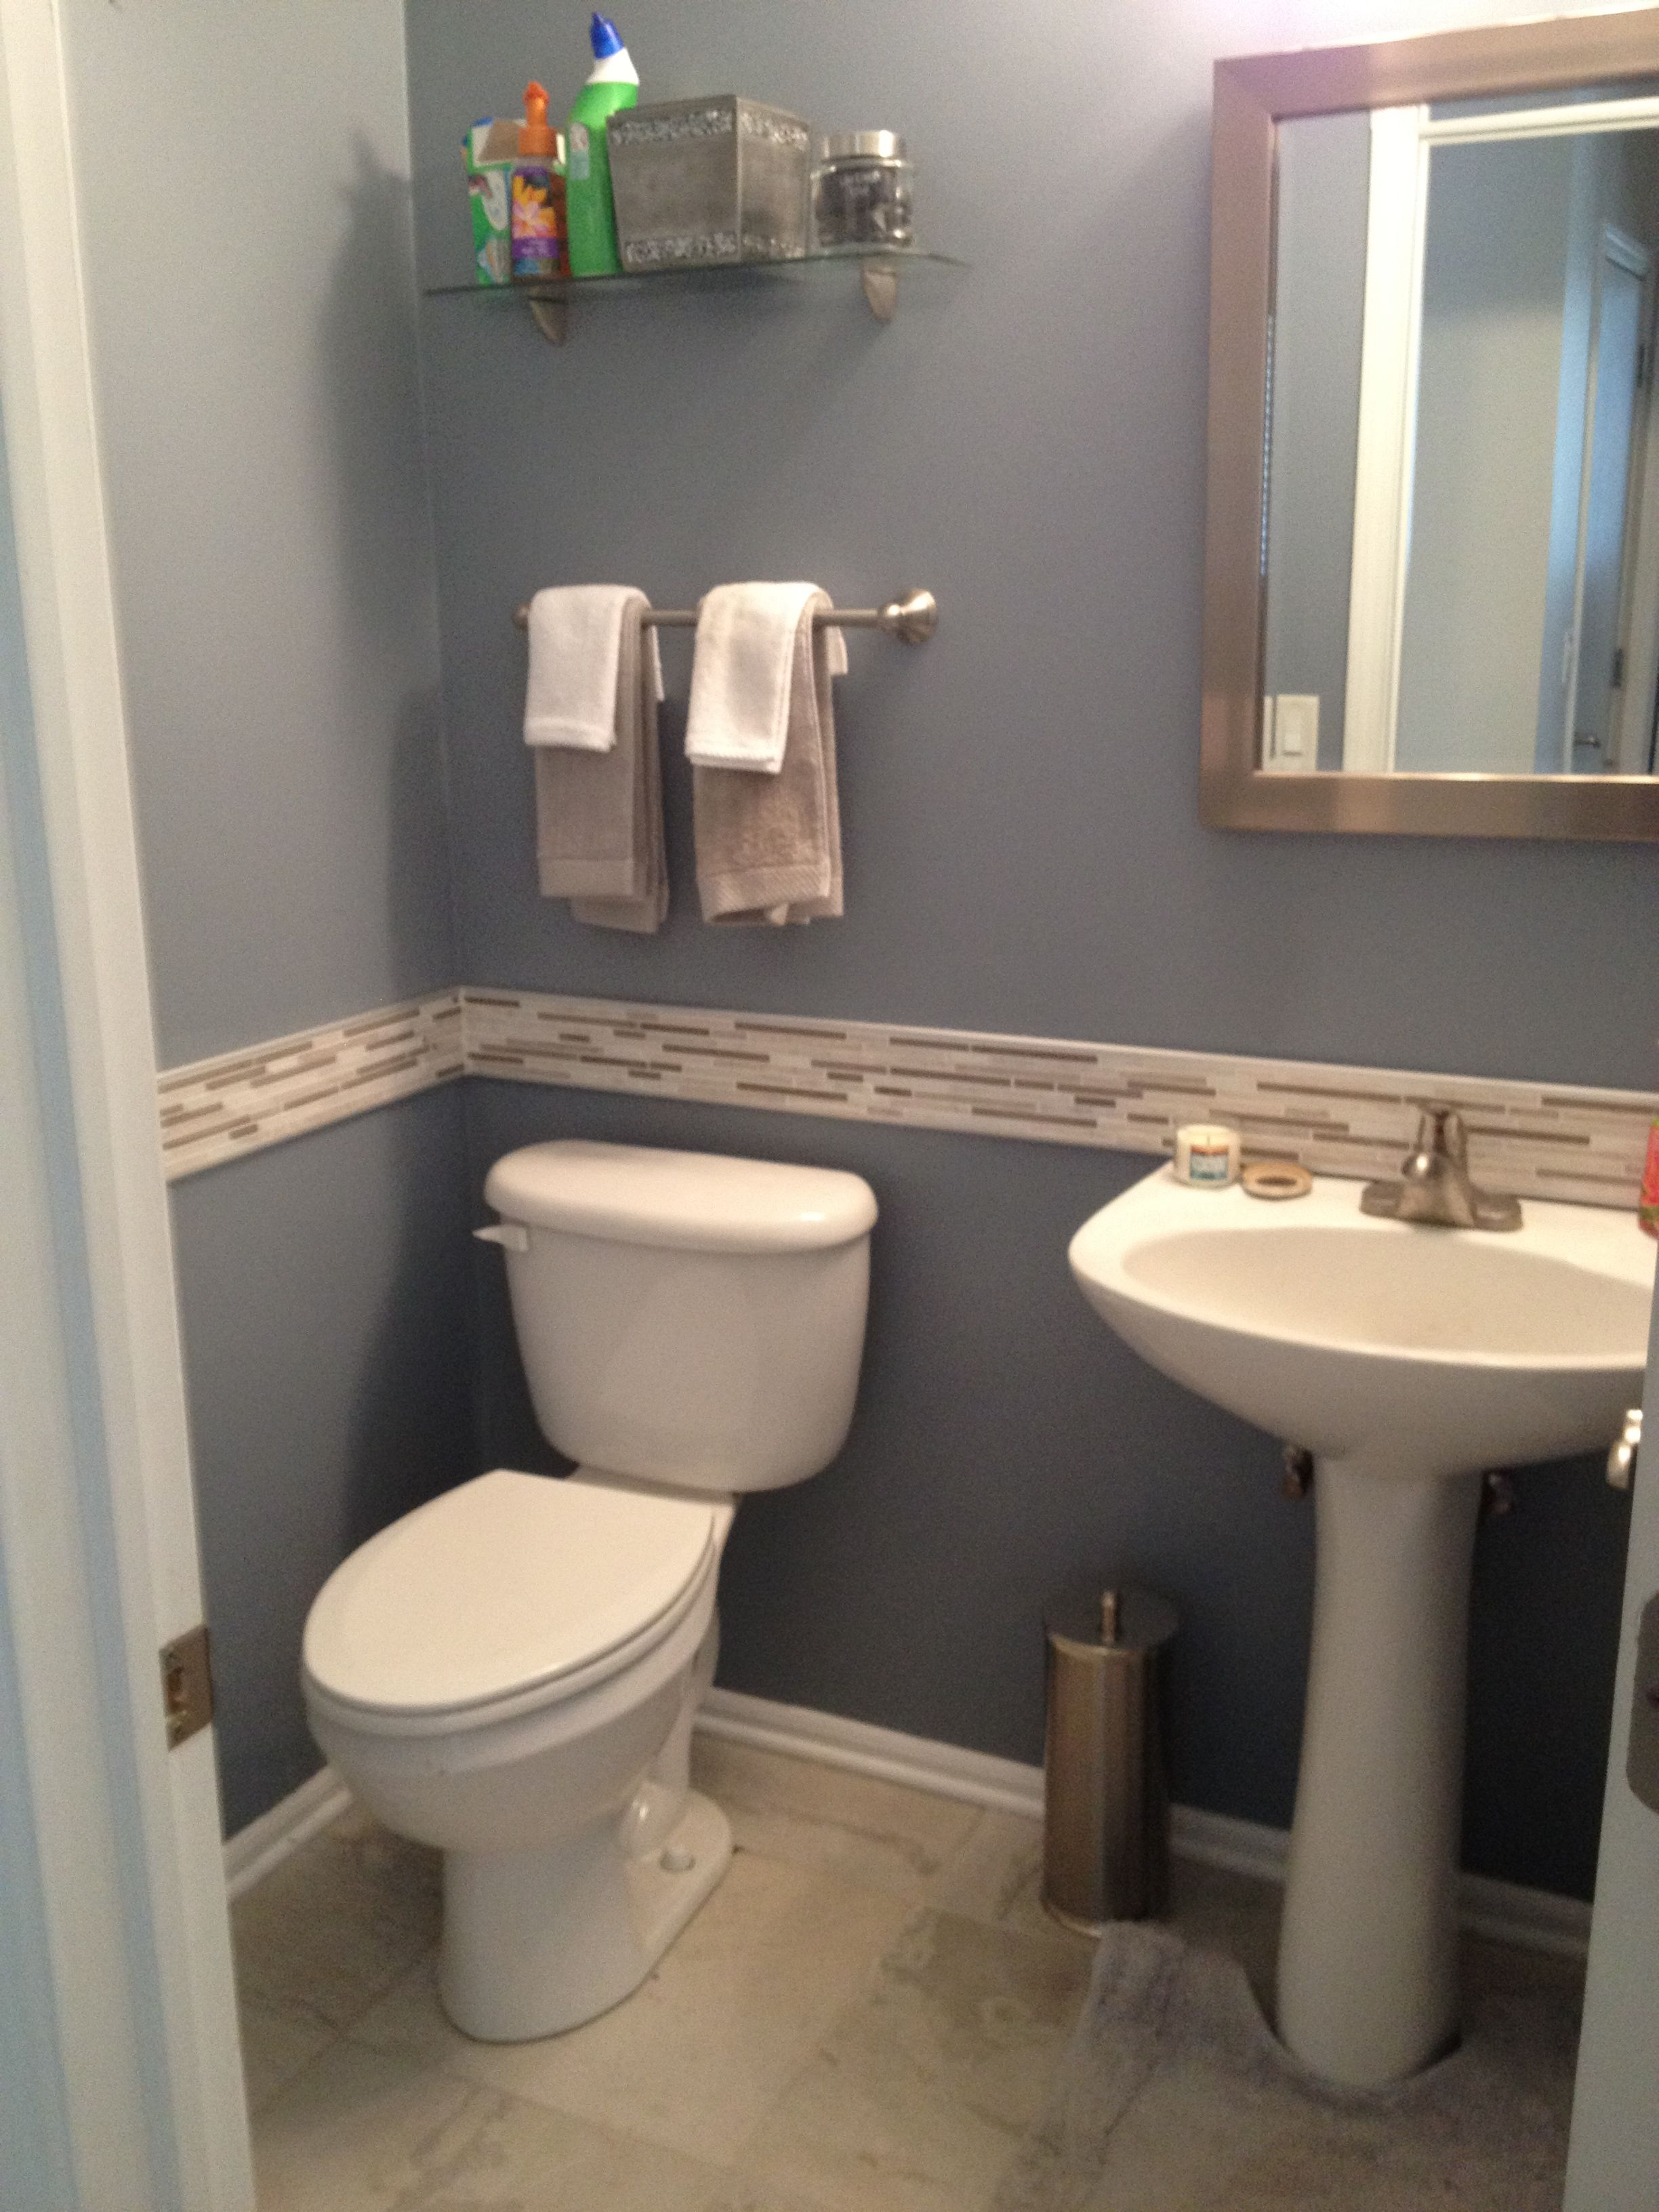 Half bath remodel my life projects pinterest half for Full bathroom design ideas